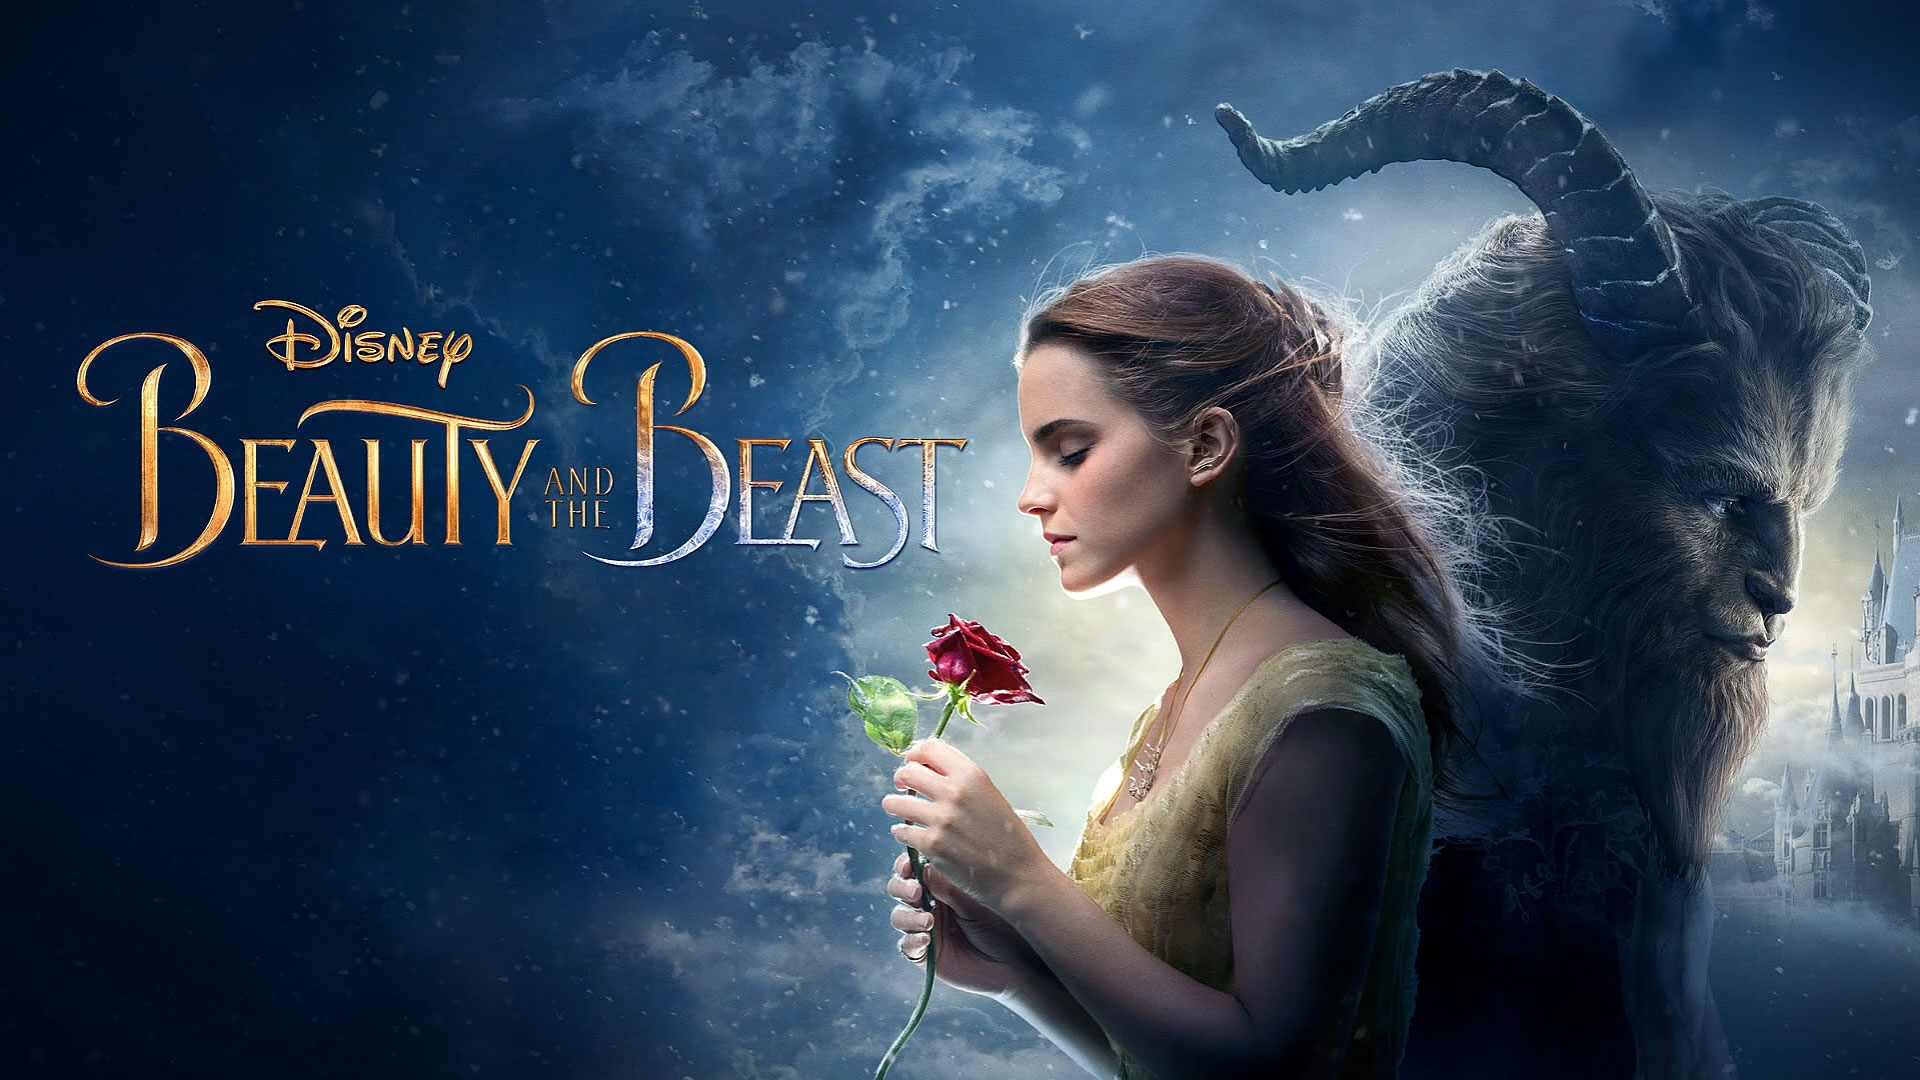 10 New Horror Movie Wallpaper Hd Full Hd 1920 1080 For Pc: 10 Most Popular Beauty And The Beast Desktop Wallpaper